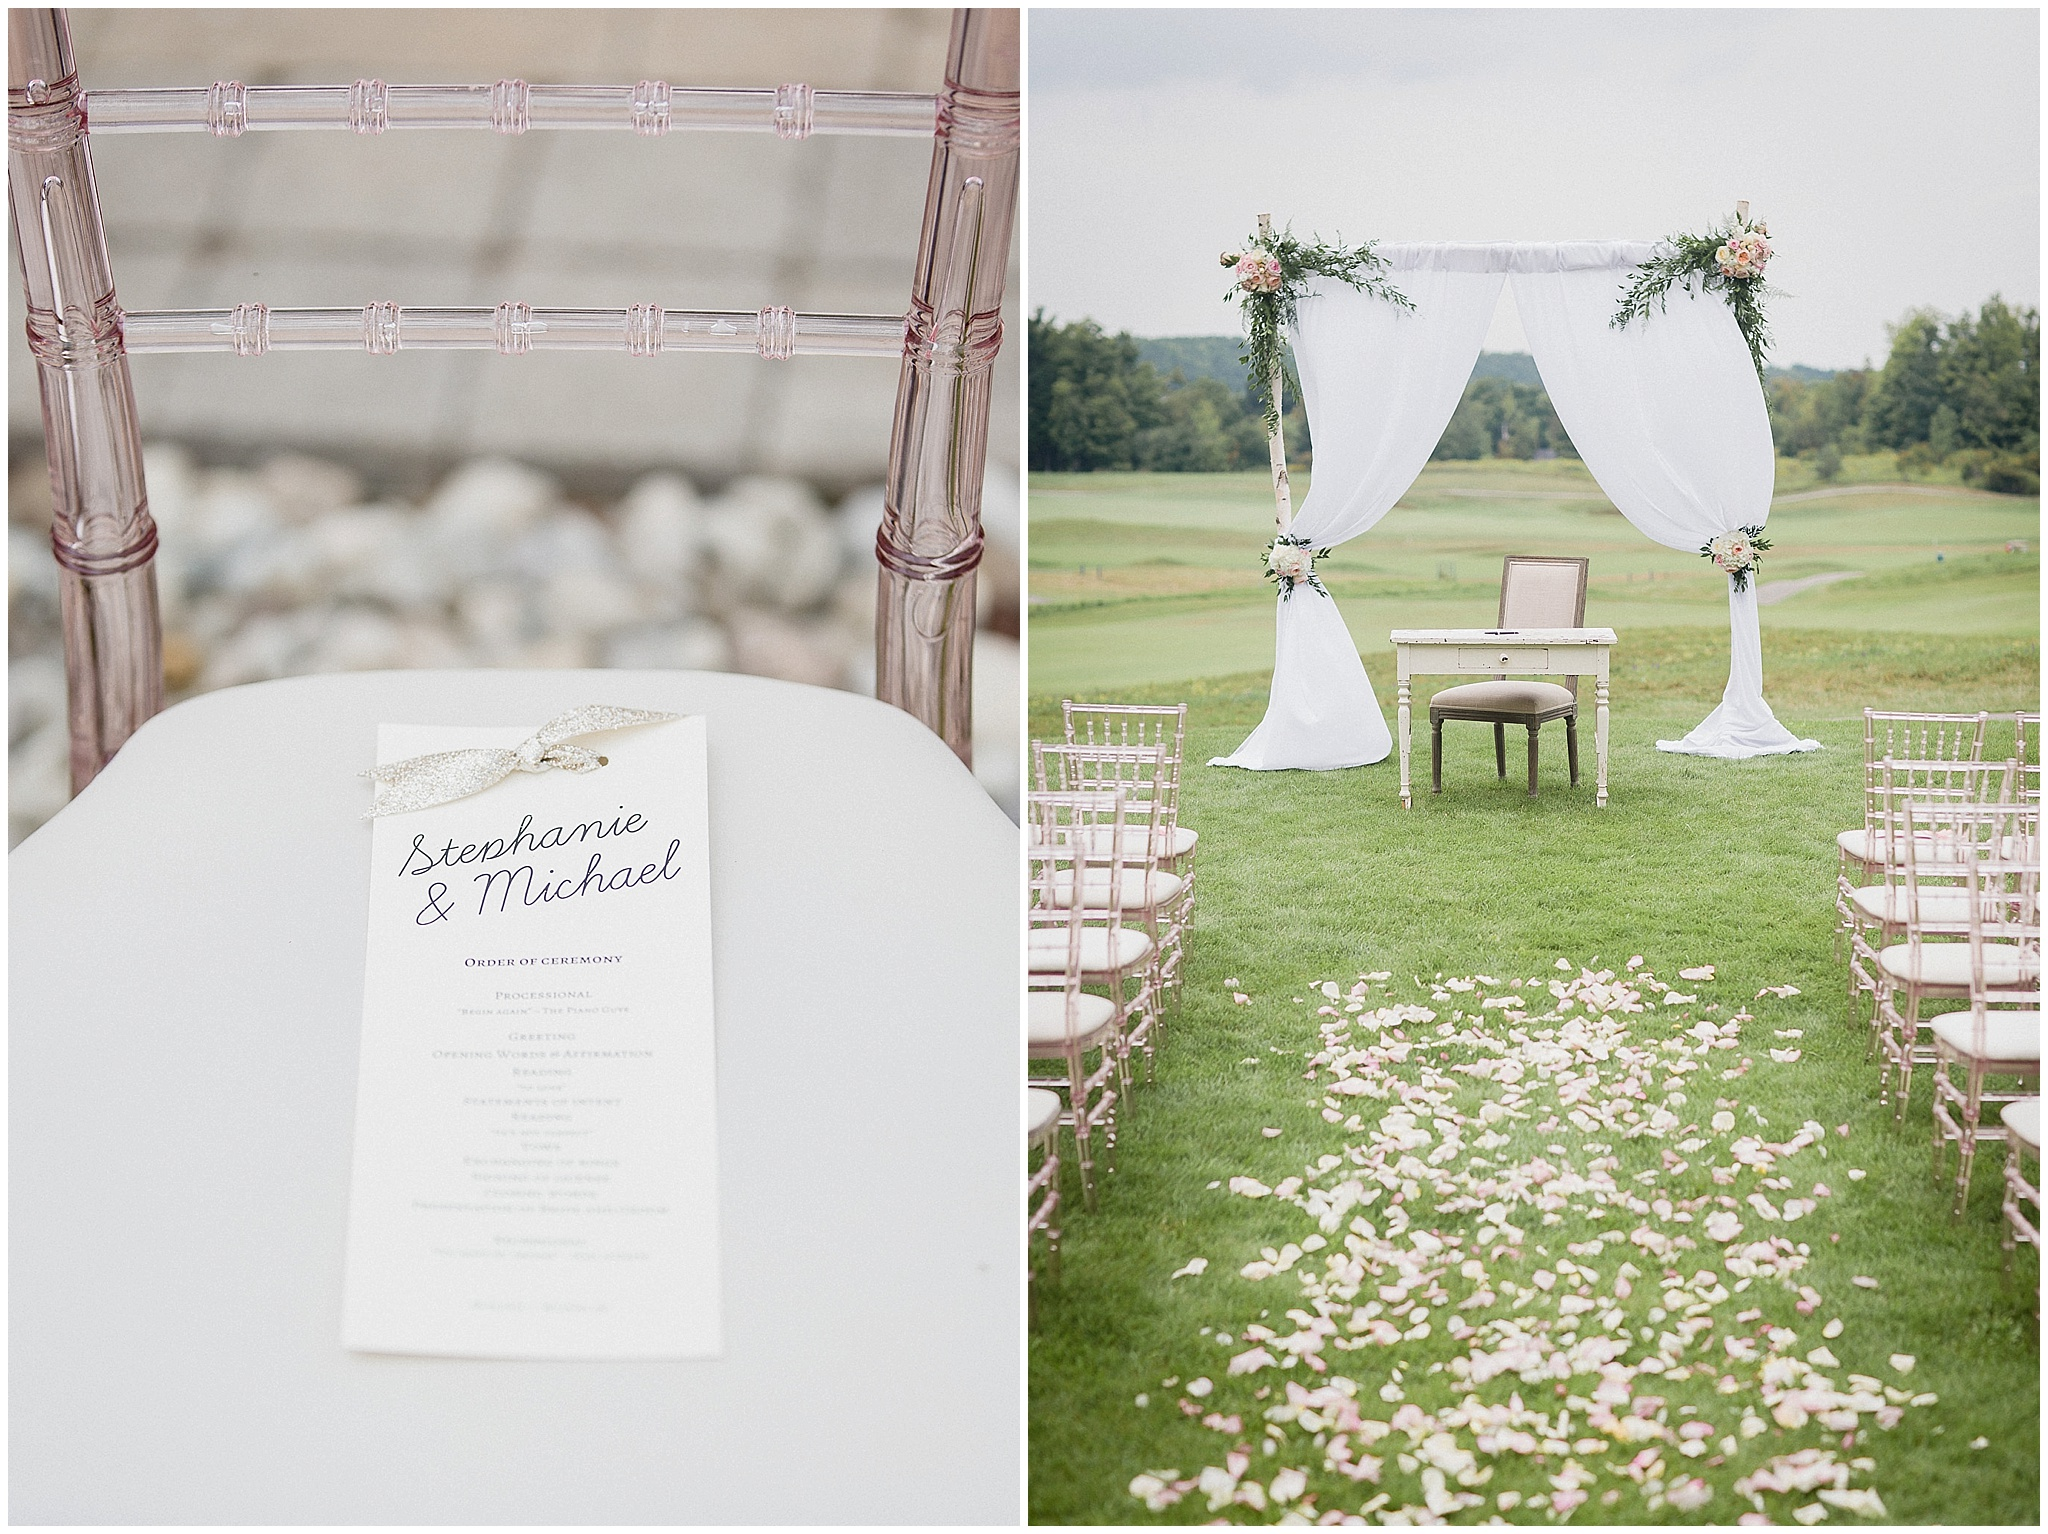 Glencairn wedding ceremony photographed by Jenn Kavanagh Photography